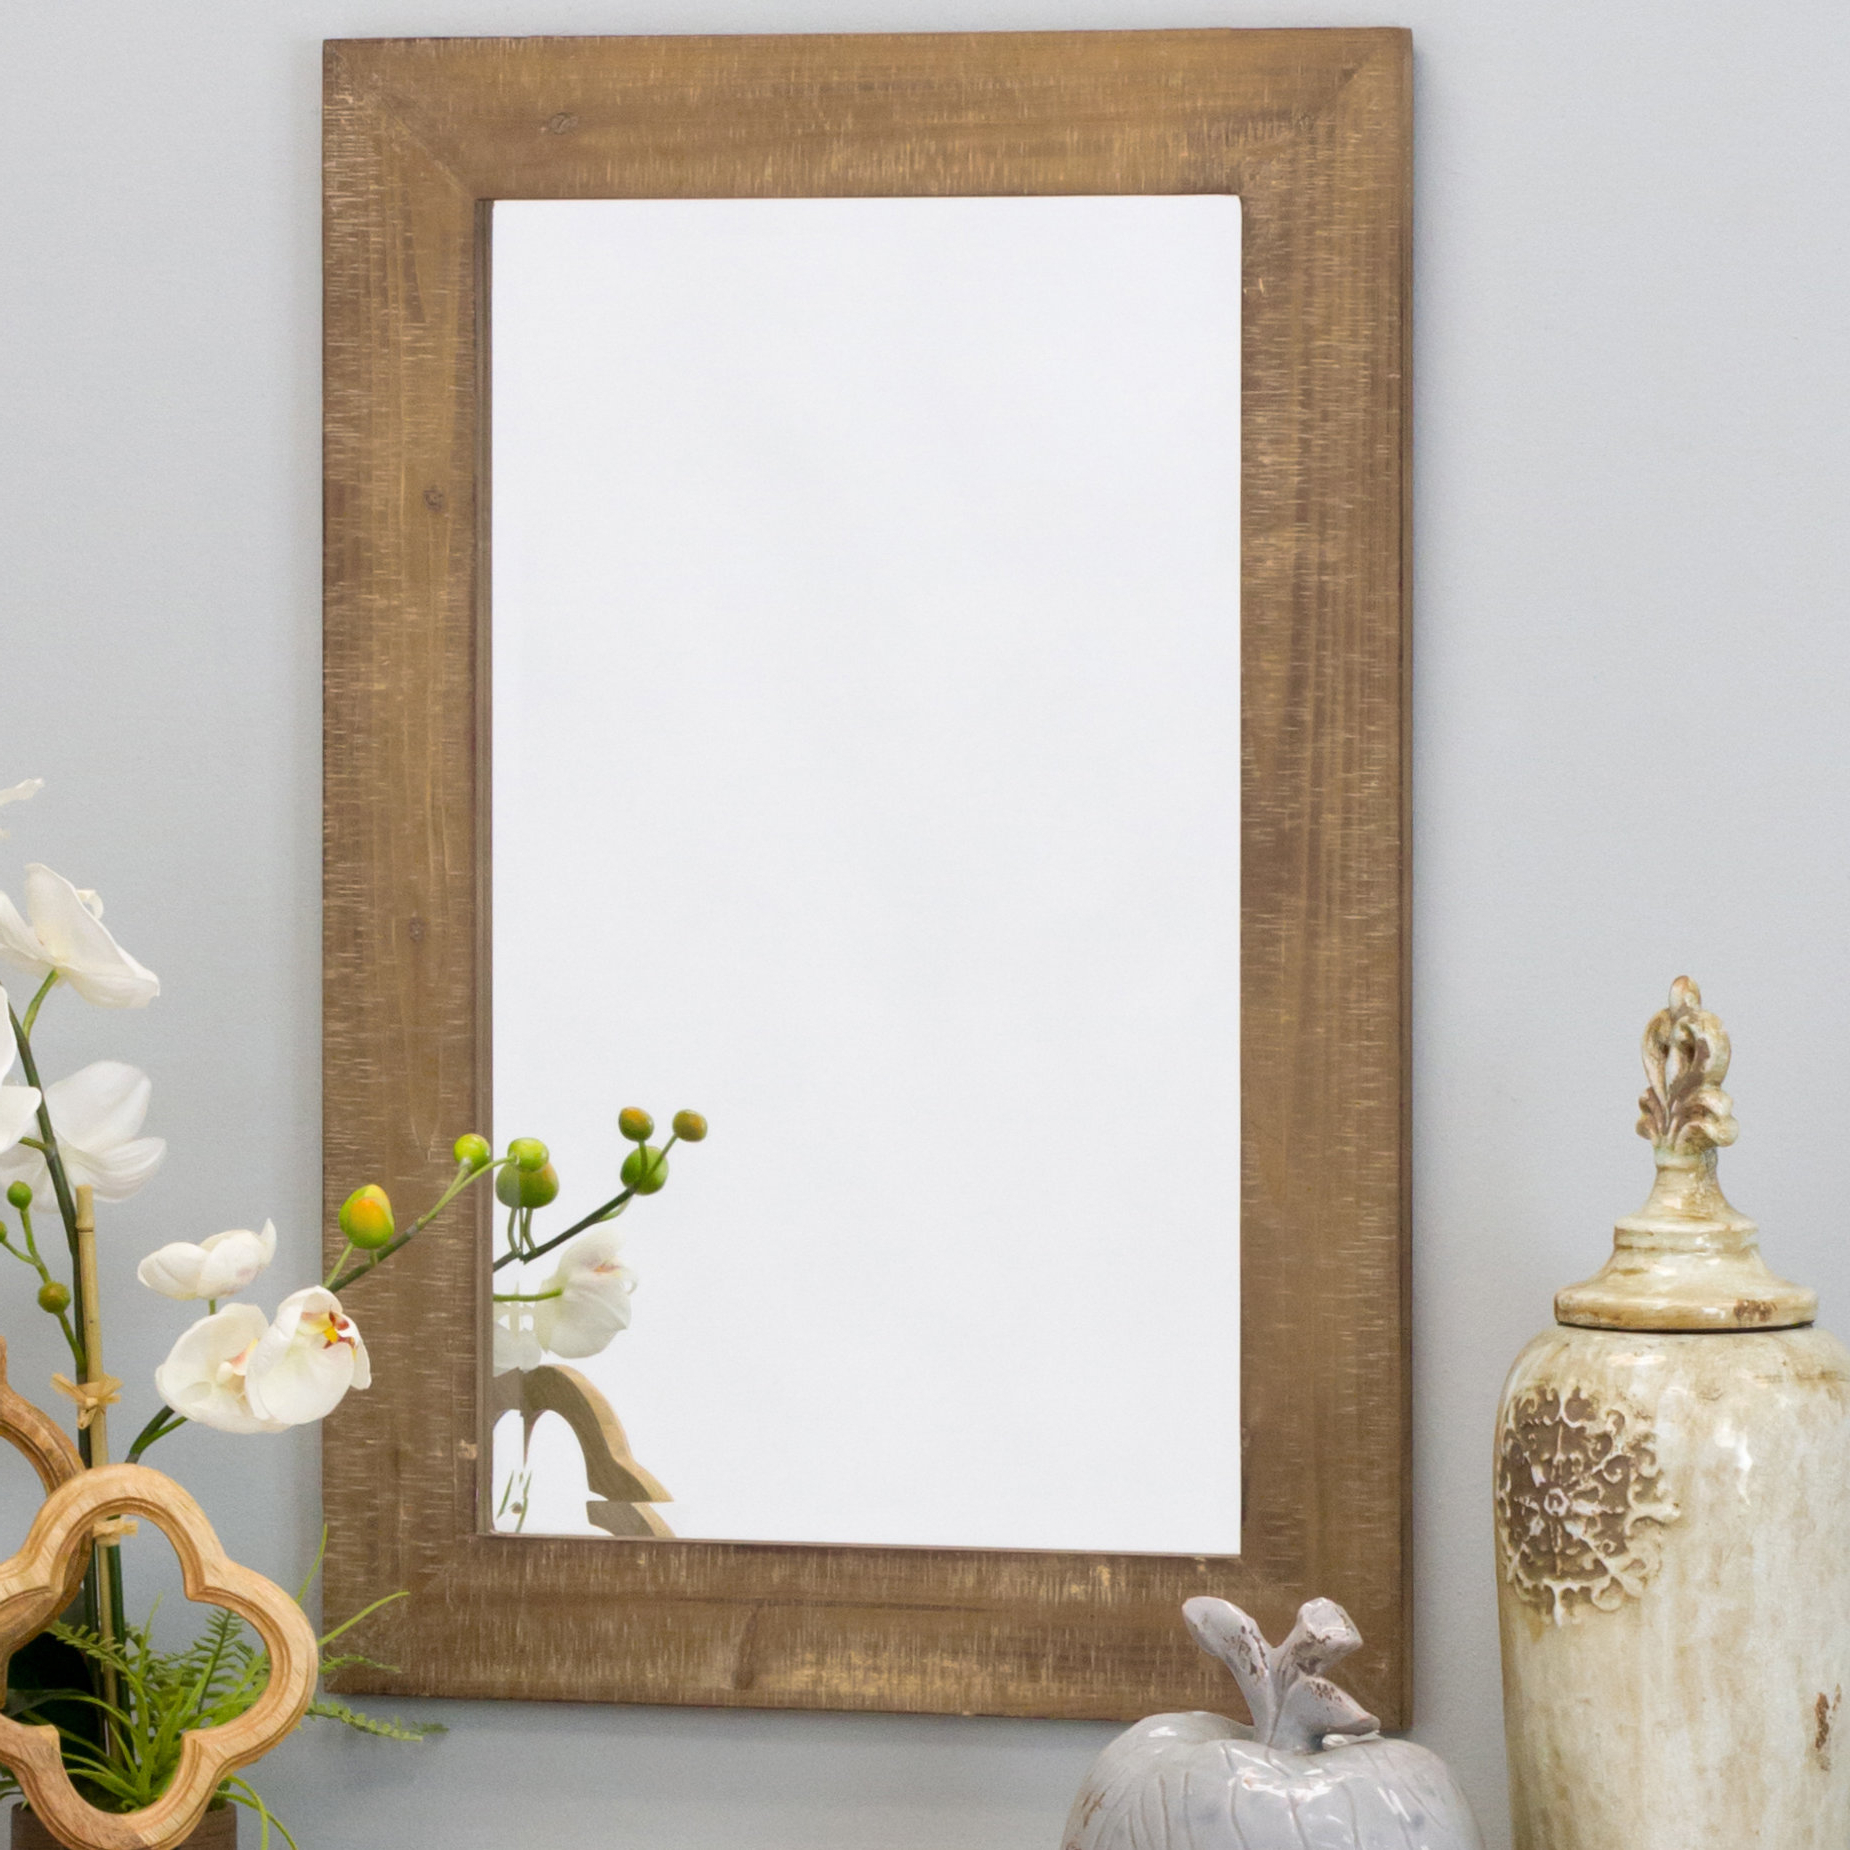 Union Rustic Longwood Rustic Beveled Accent Mirror Pertaining To Recent Longwood Rustic Beveled Accent Mirrors (View 2 of 20)